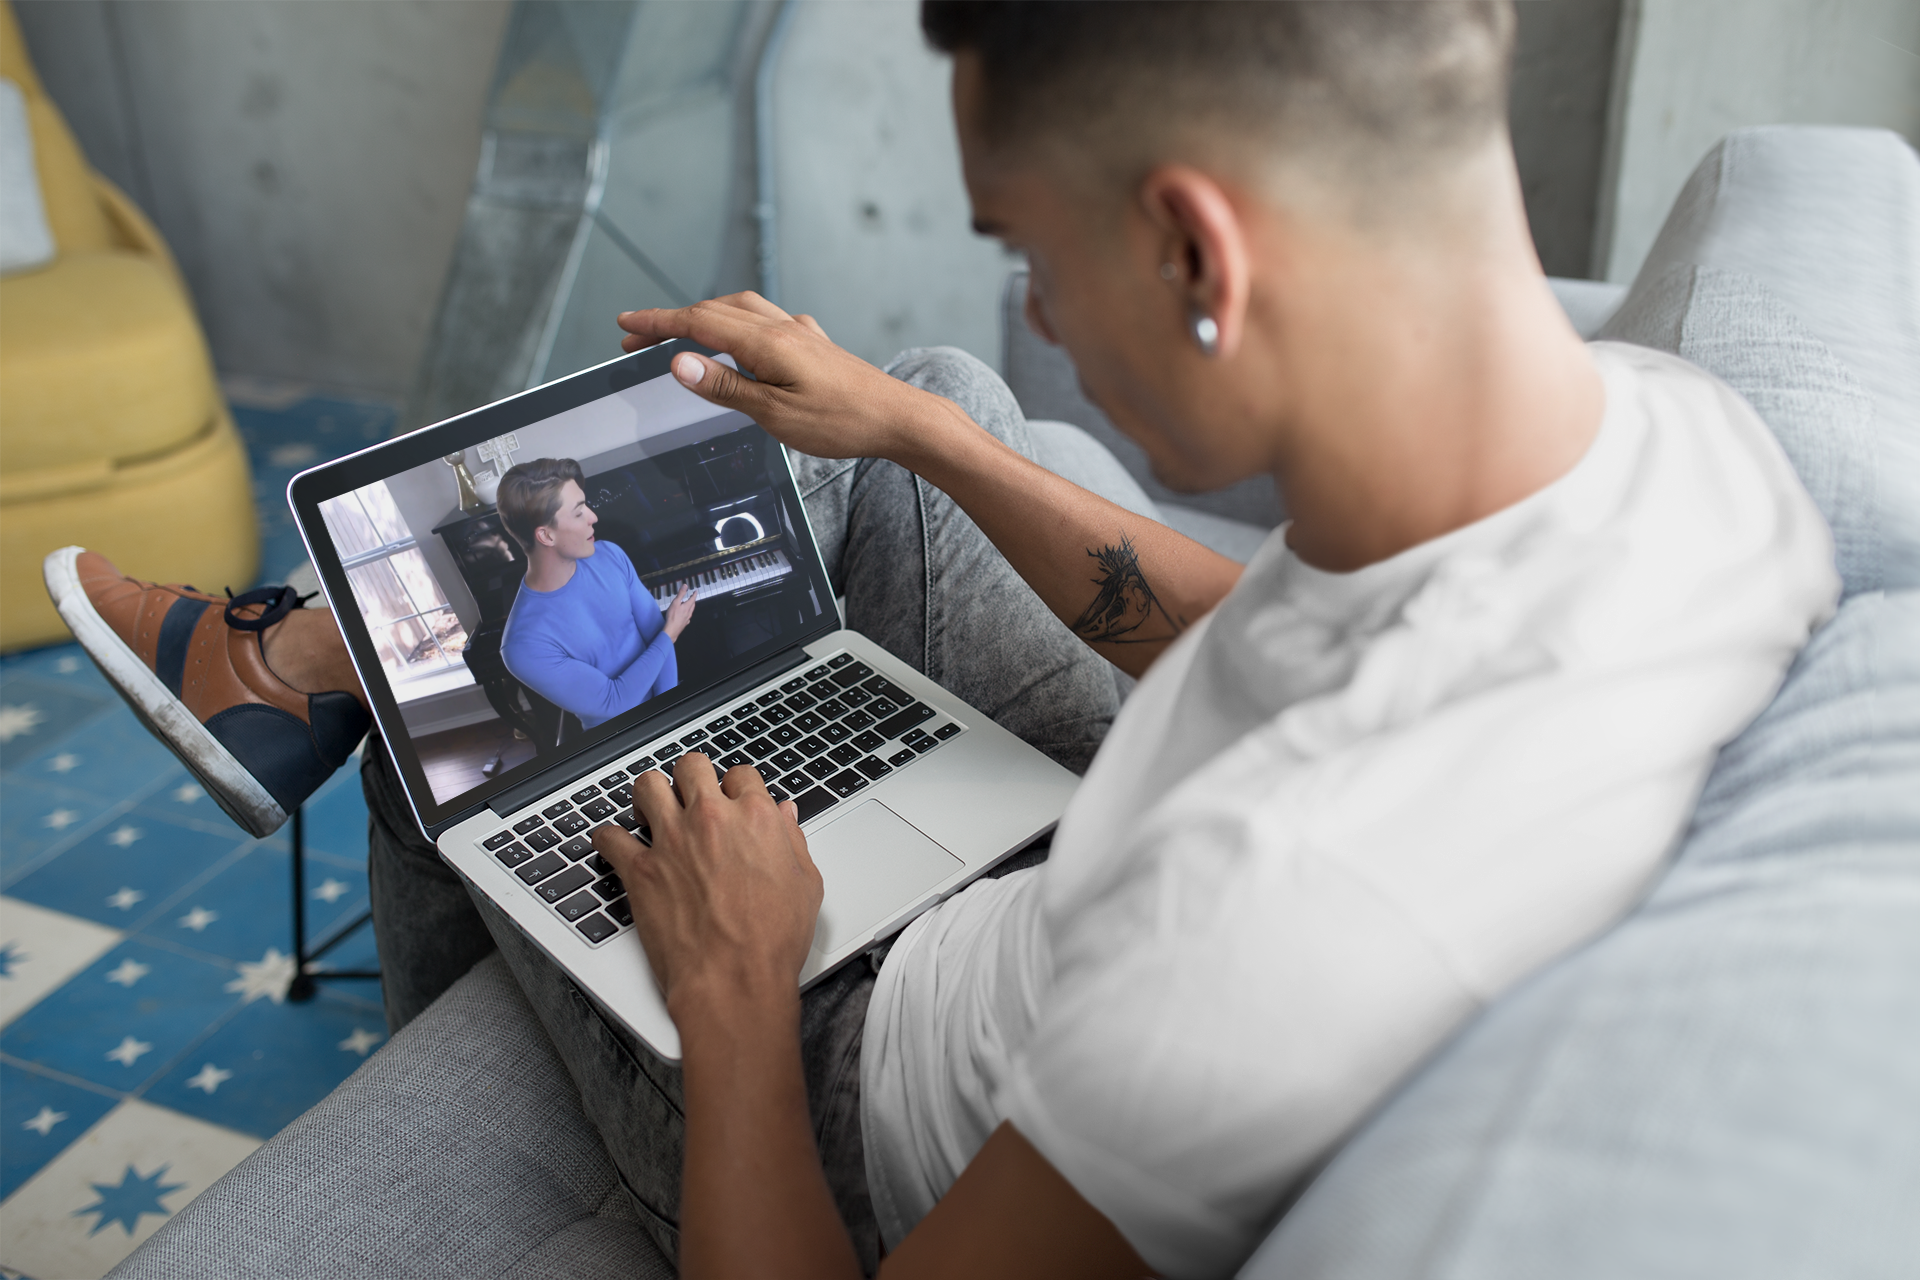 man-using-a-macbook-mockup-sitting-on-a-couch-a20757.png